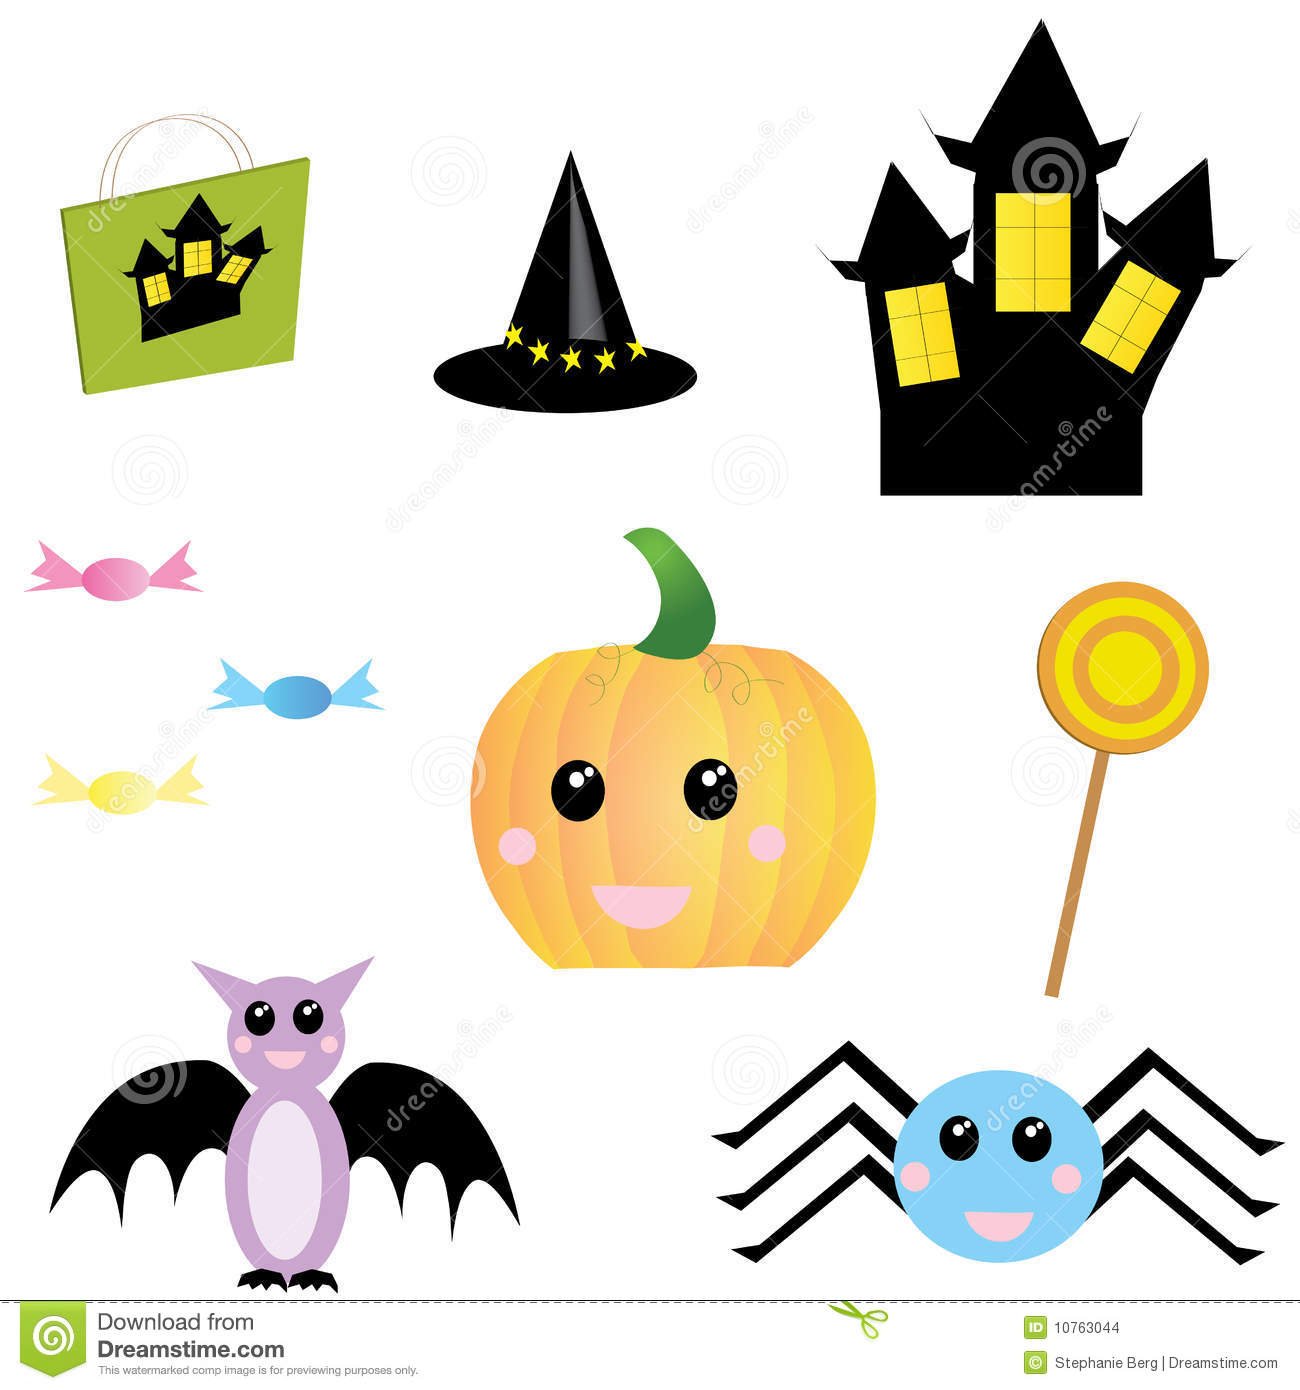 halloween objects stock images image 10763044 cute pumpkin clipart black and white cute pumpkin clip art black and white